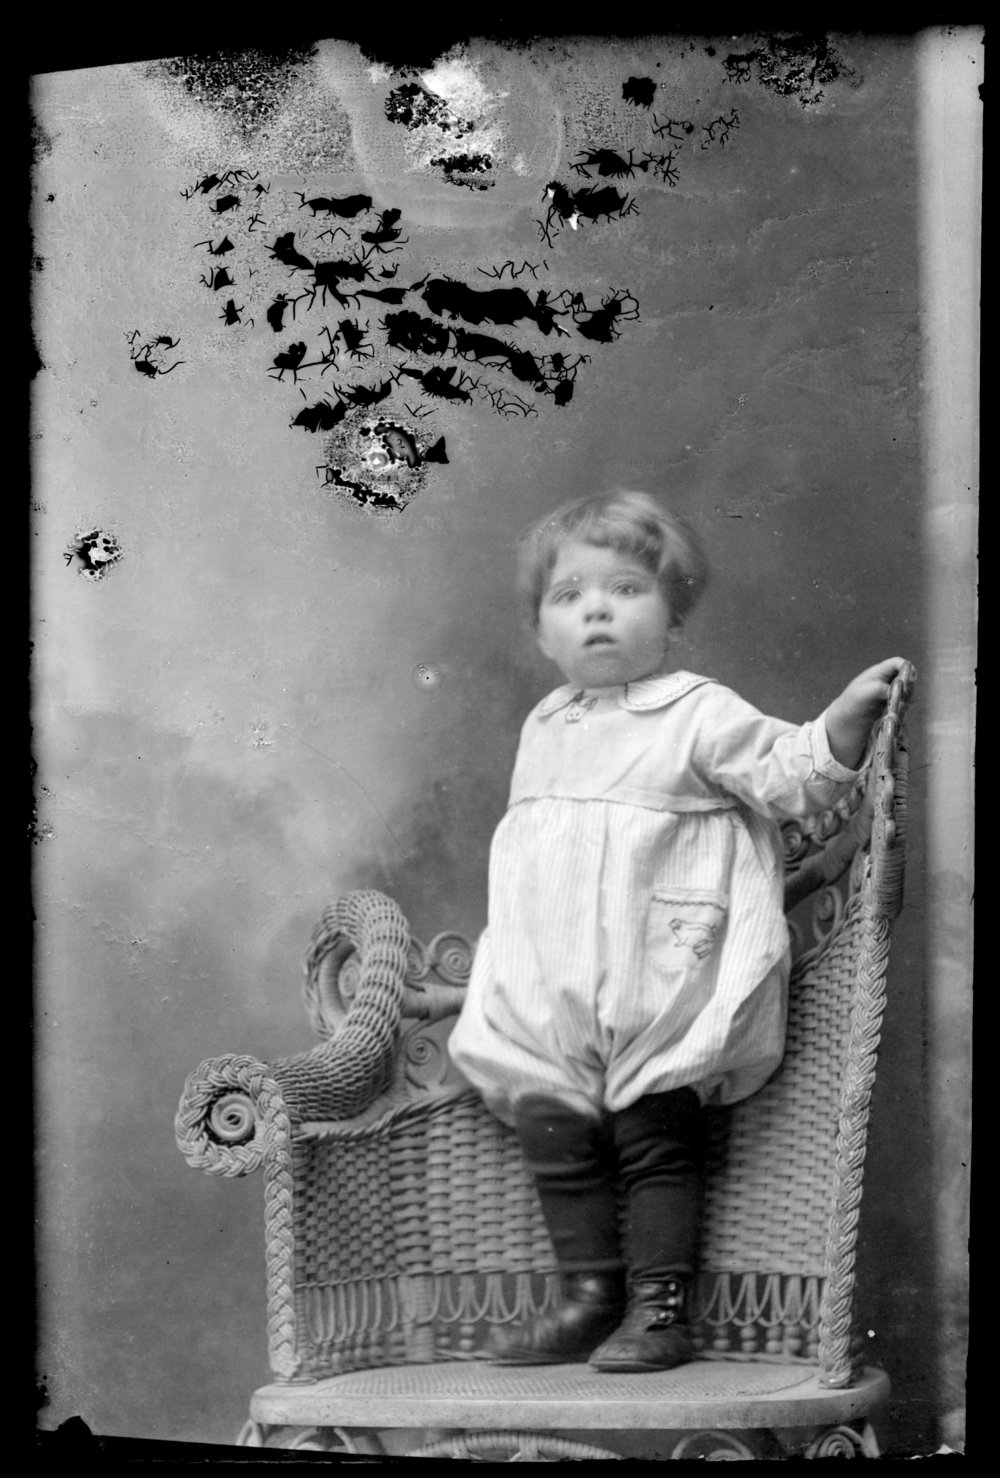 Michael A. Kennedy photo collection, St. Paul, Kansas - Portrait of young child standing on wicker chair (slide 2746, 2747)